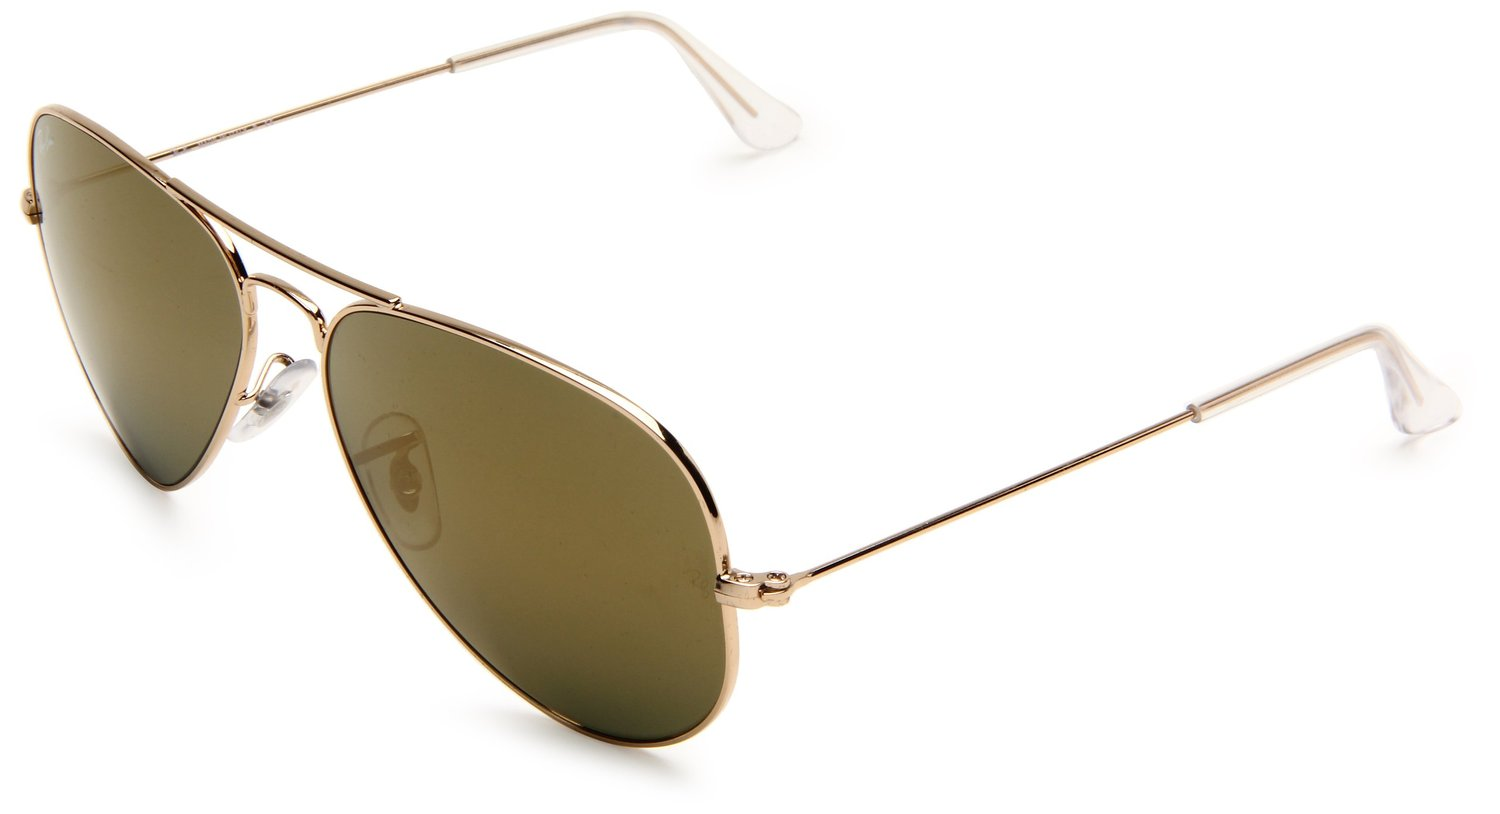 Ray-Ban 0RB3025 Aviator Sunglasses,Gold Frame/Gold Mirror Lens,One Size: Ray-Ban